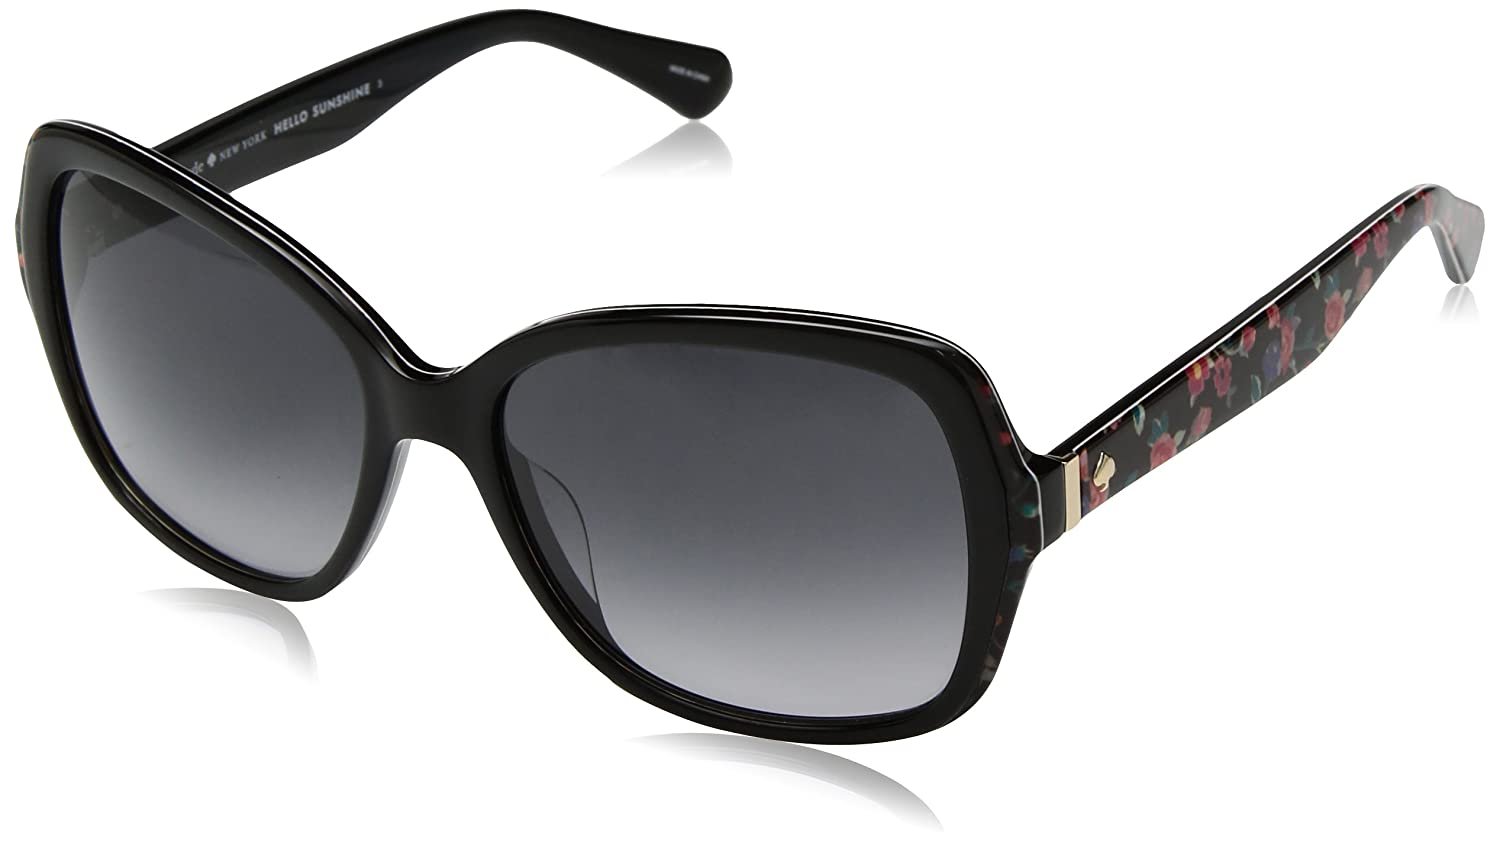 5e46ef74ce Amazon.com  Kate Spade Women s Karalyn s Square Sunglasses black floral  print 56 mm  Clothing